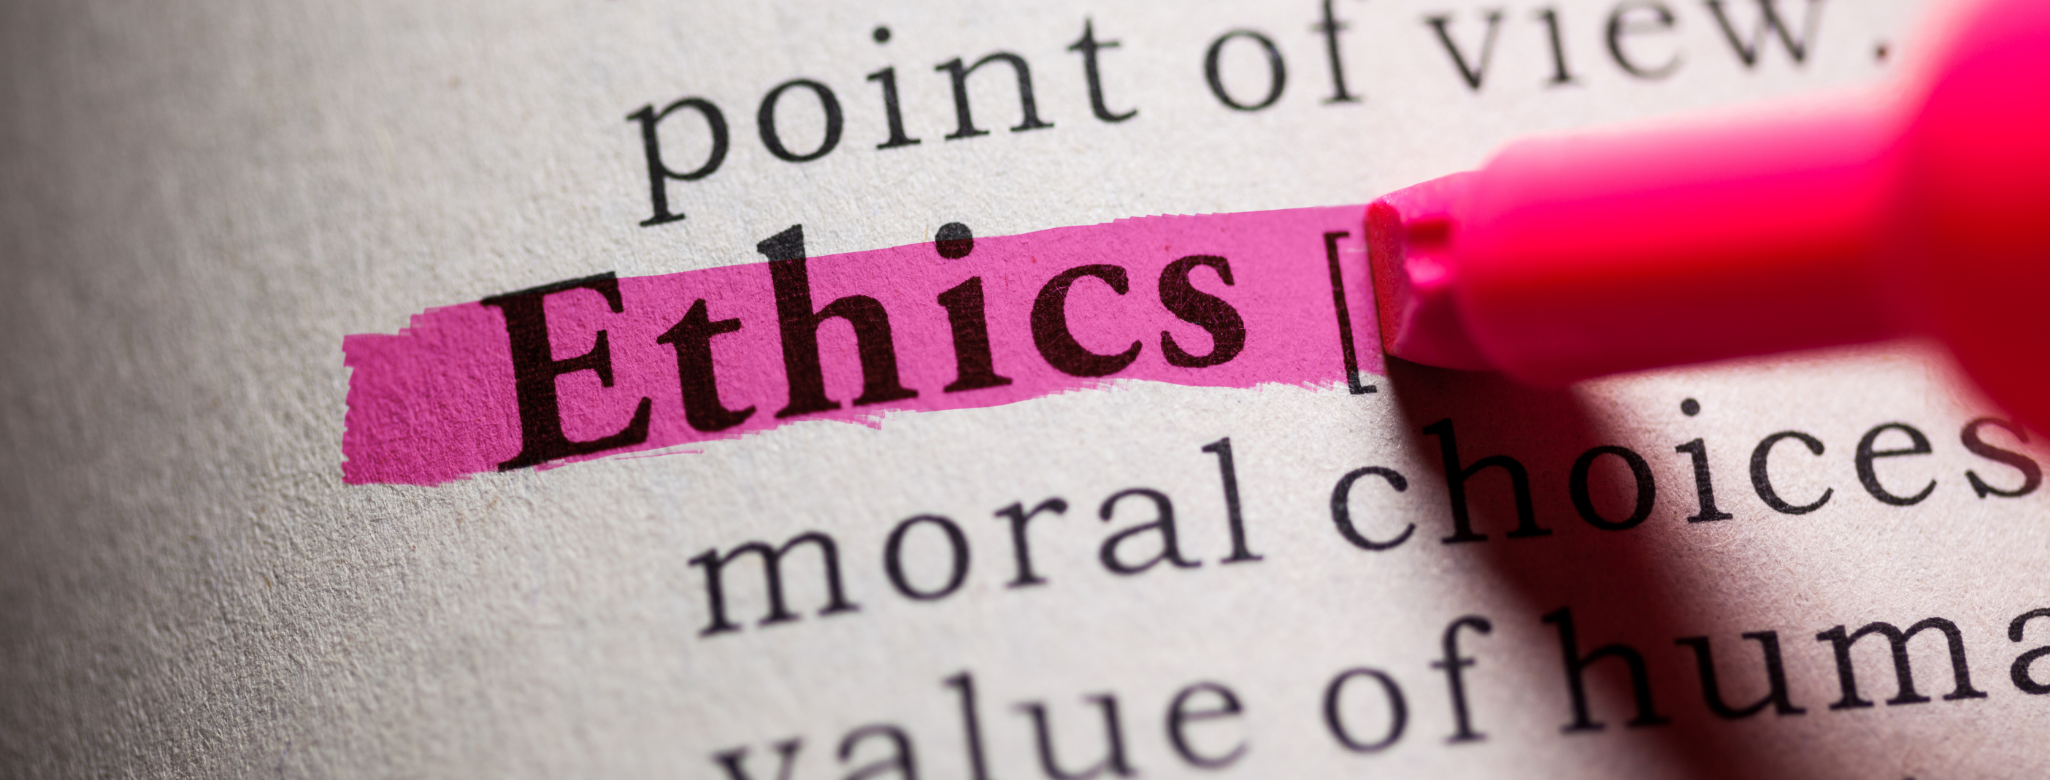 Post-Conference Ethics for Treatment or Prevention